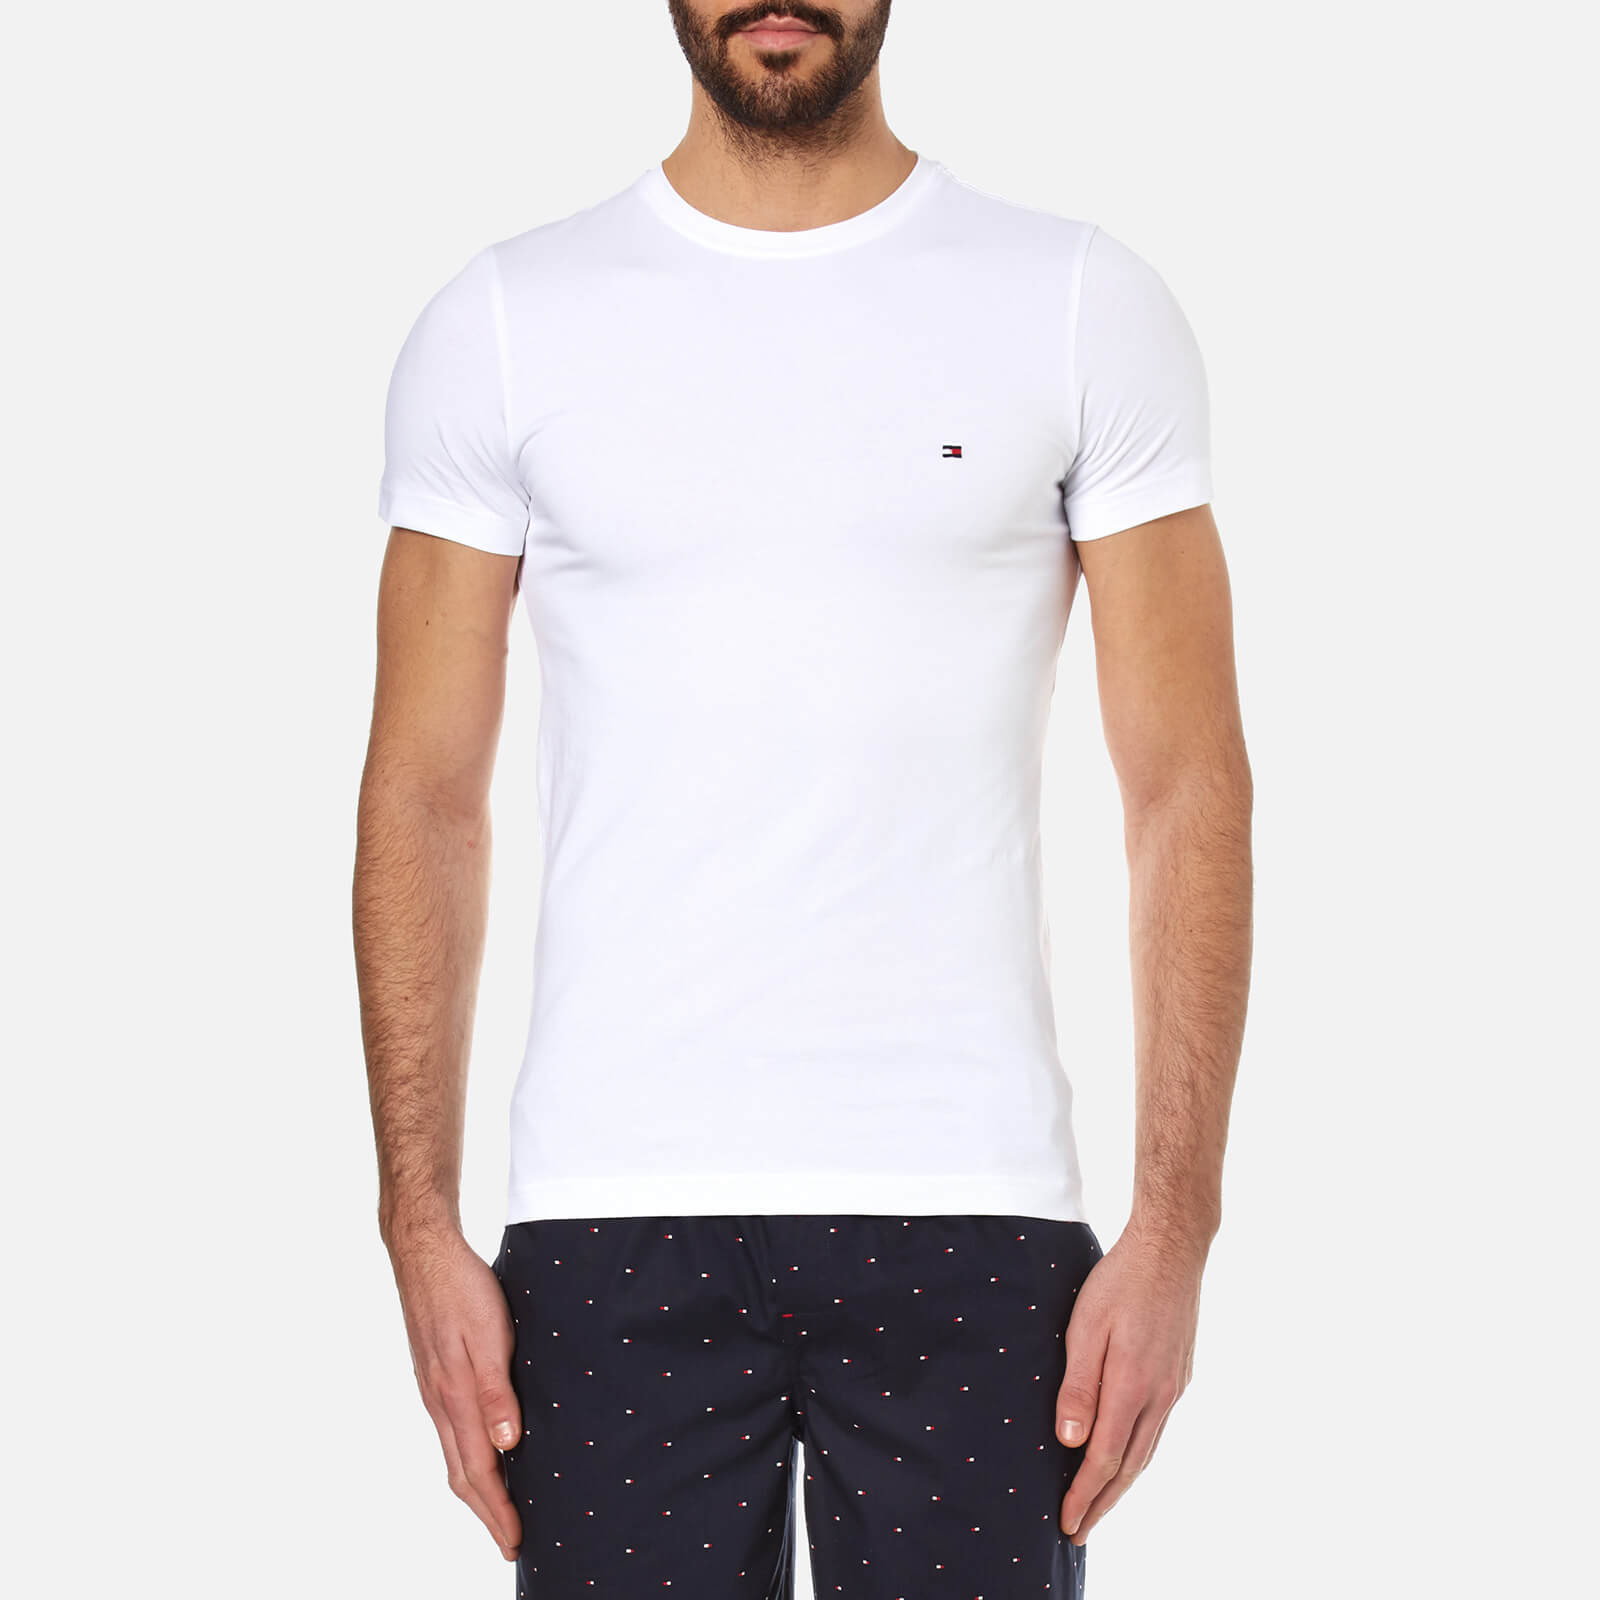 4ae44b8d Tommy Hilfiger Men's New Stretch Crew Neck T-Shirt - Classic White Clothing  | TheHut.com